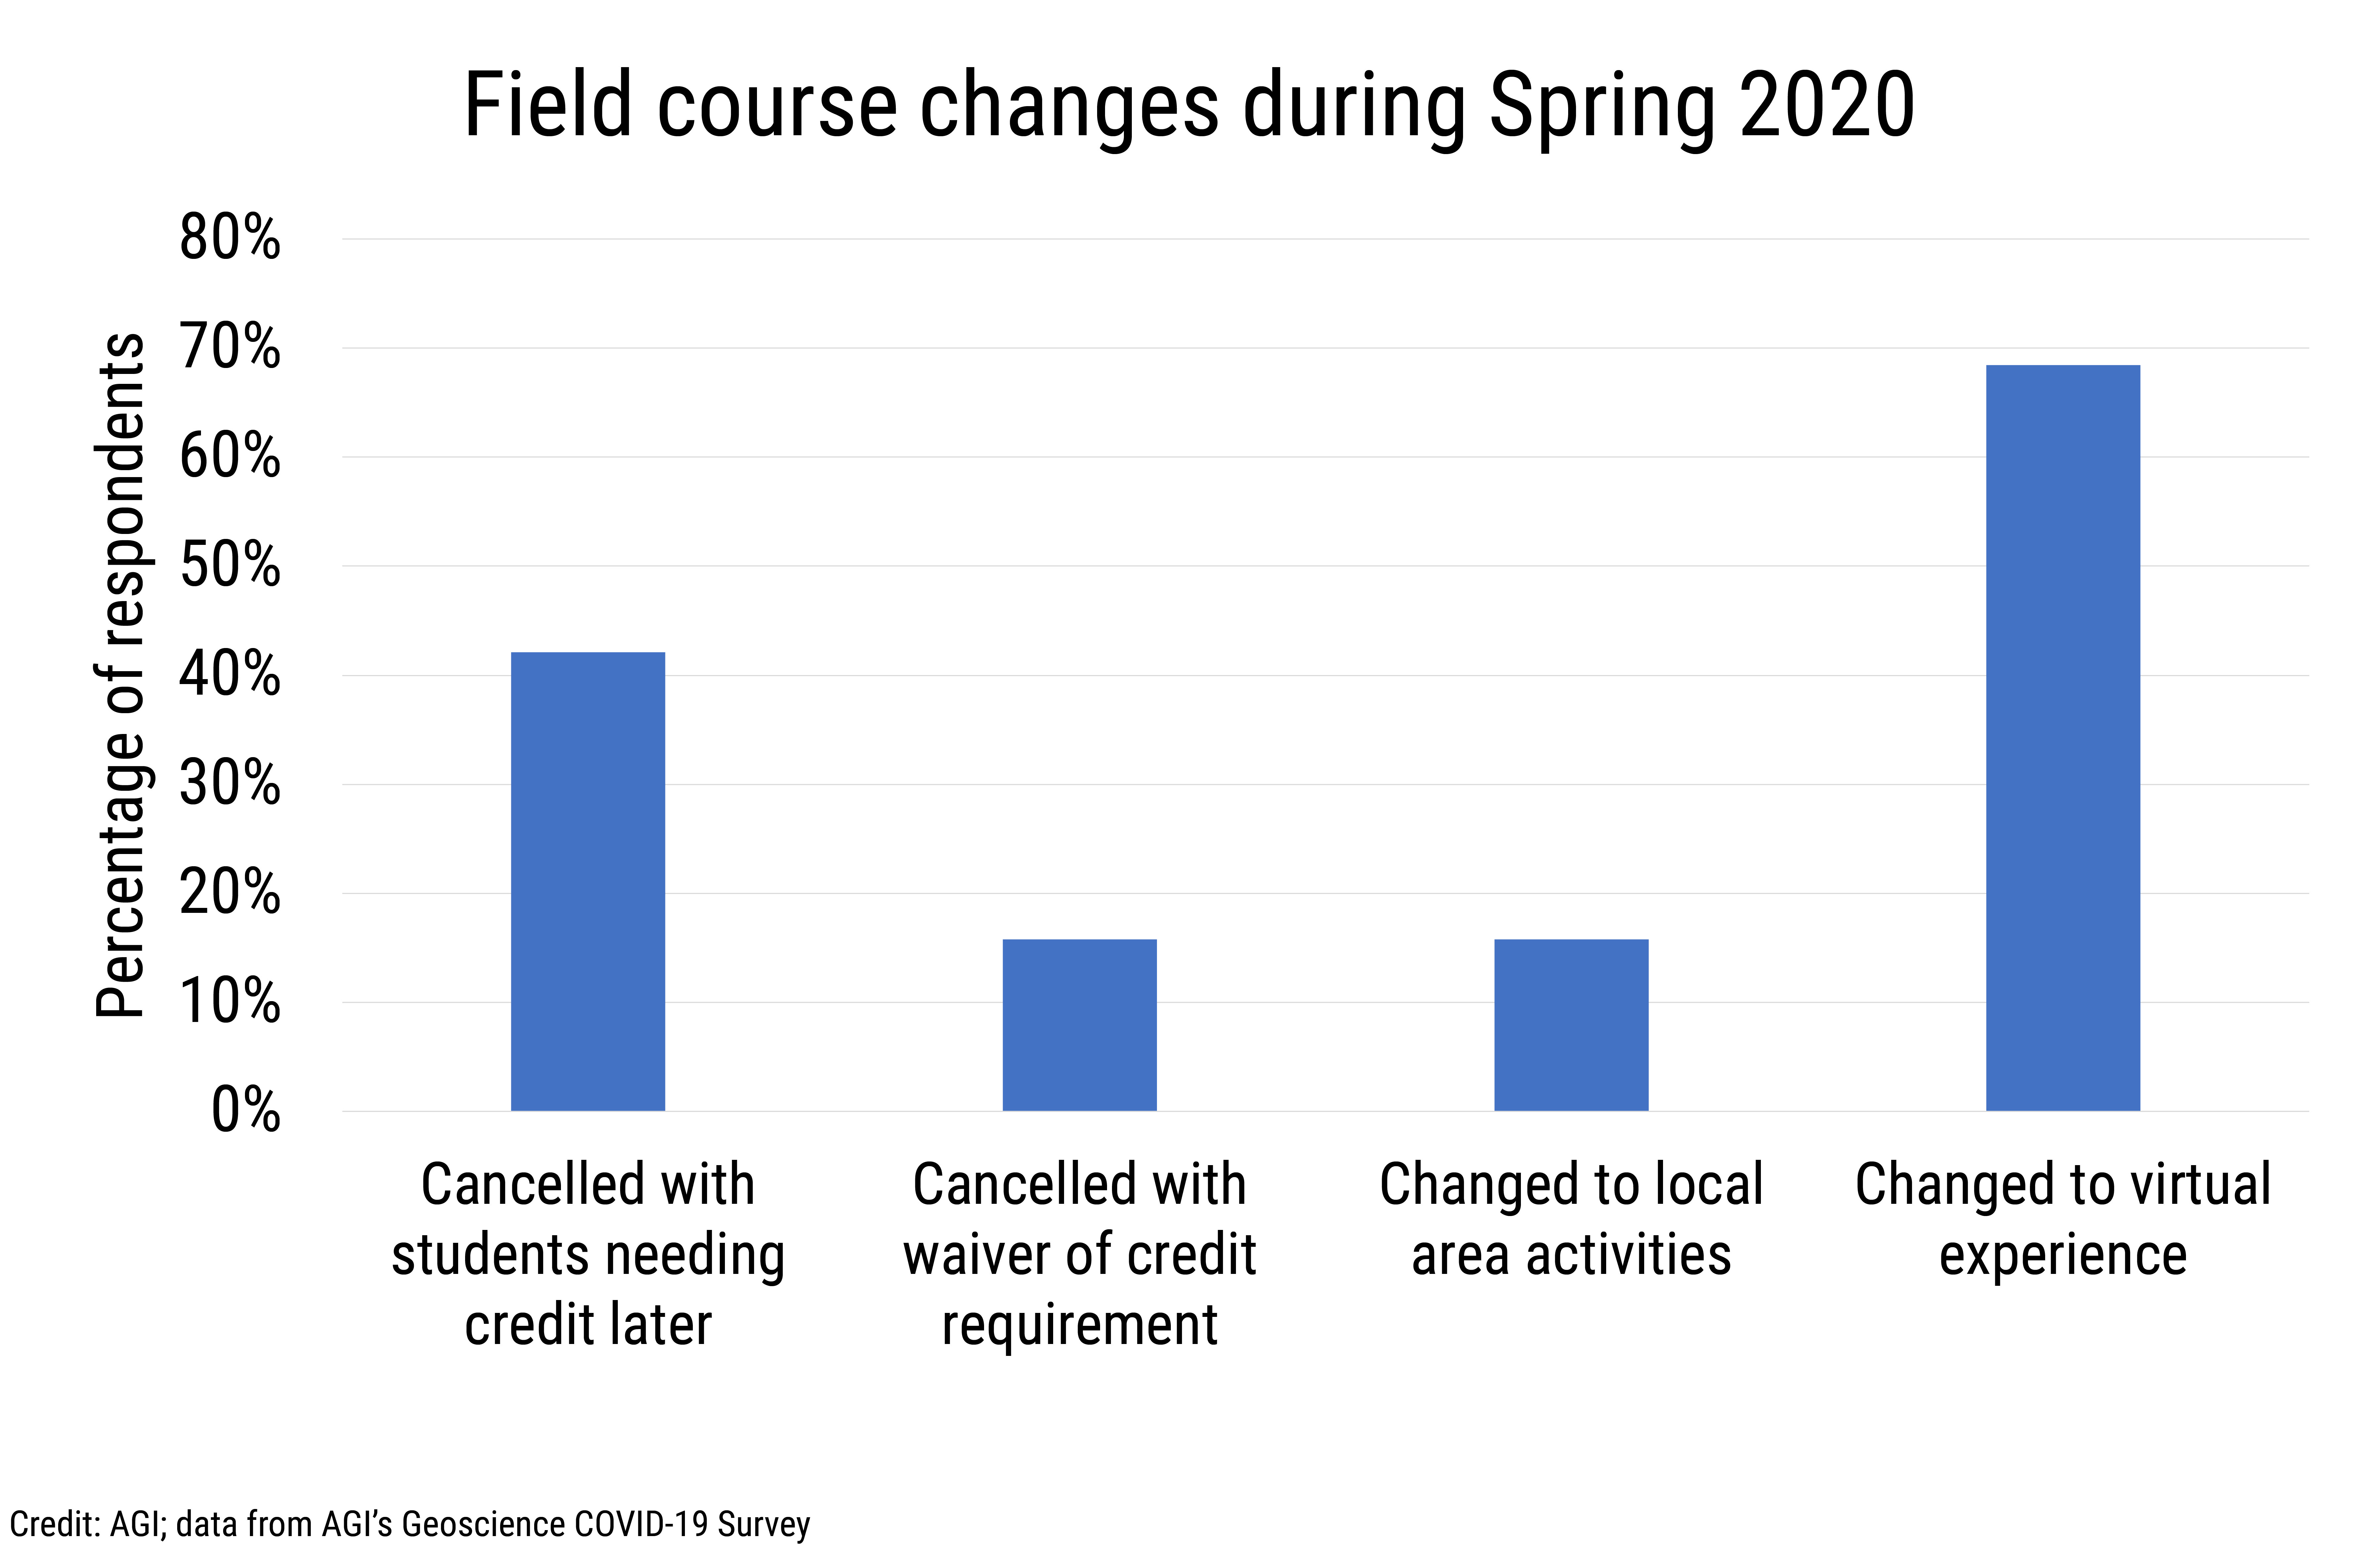 Data Brief 2020-006 chart 02: Field course changes during Spring 2020 (credit: AGI)